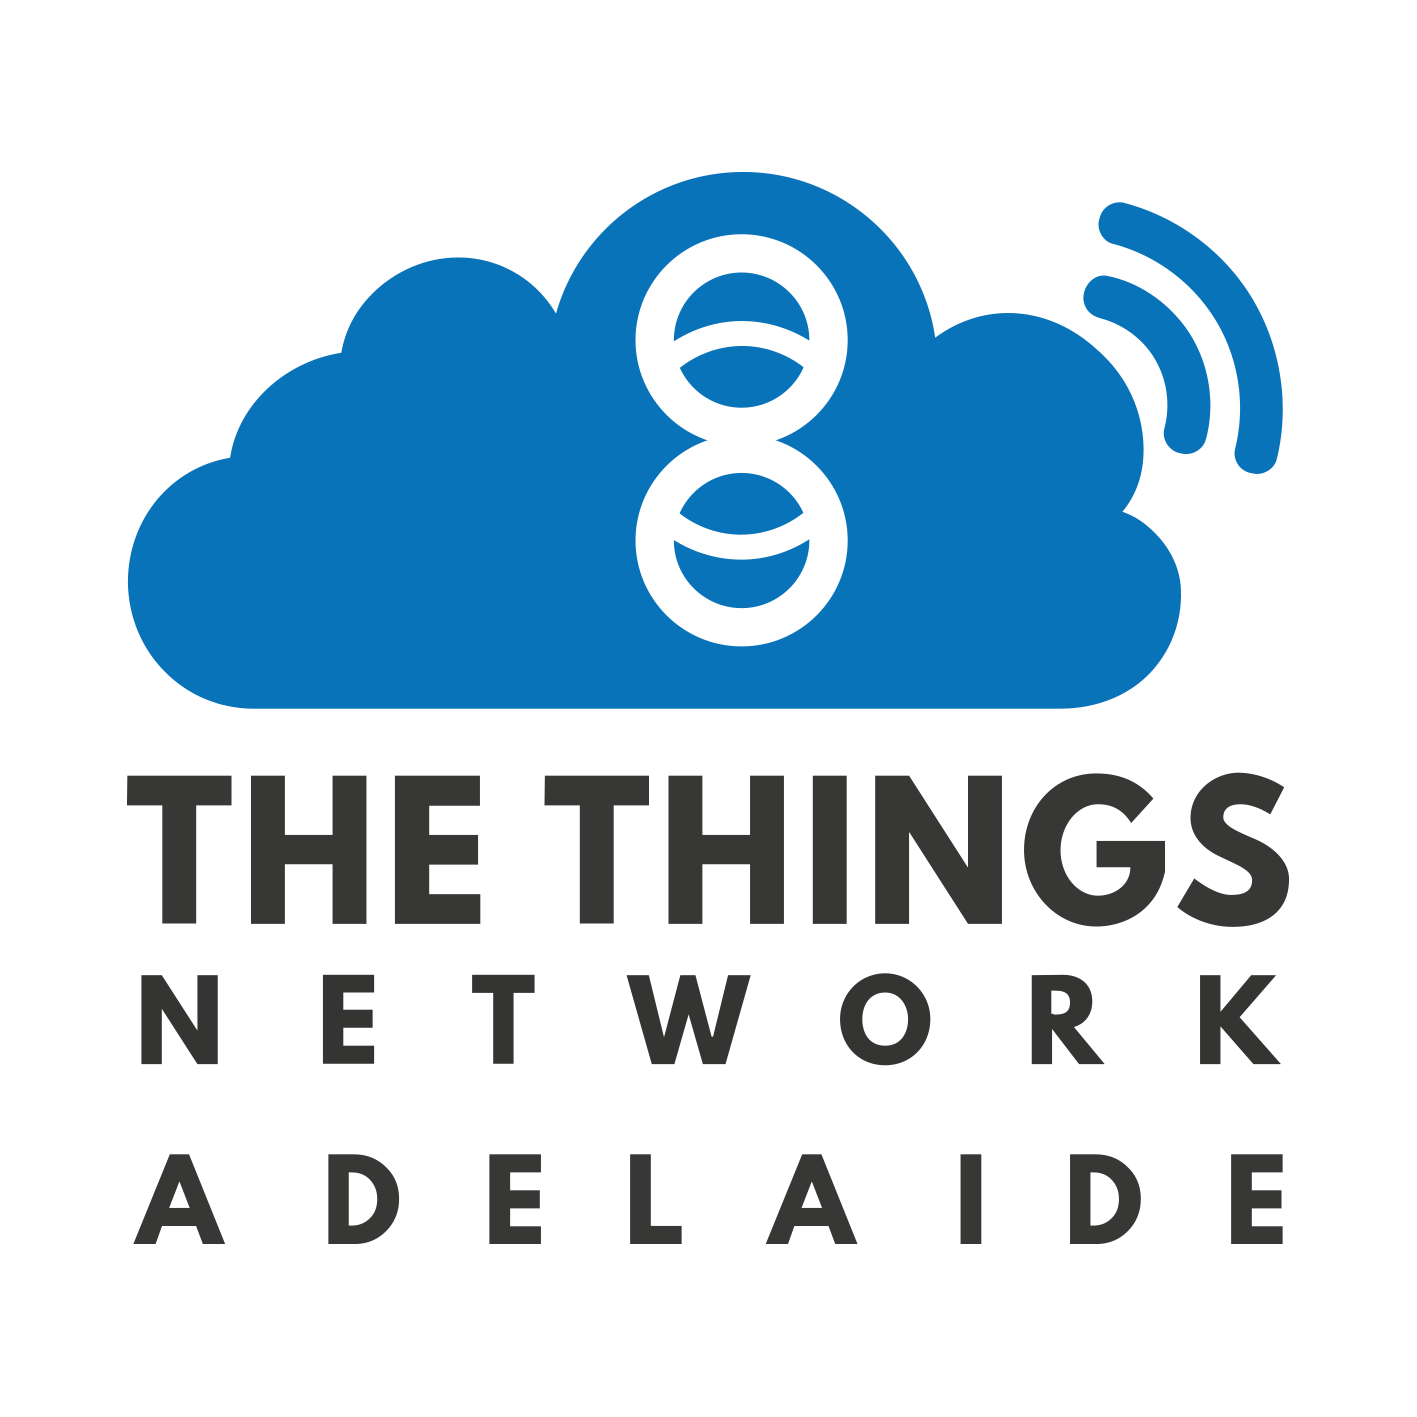 The Things Network Adelaide